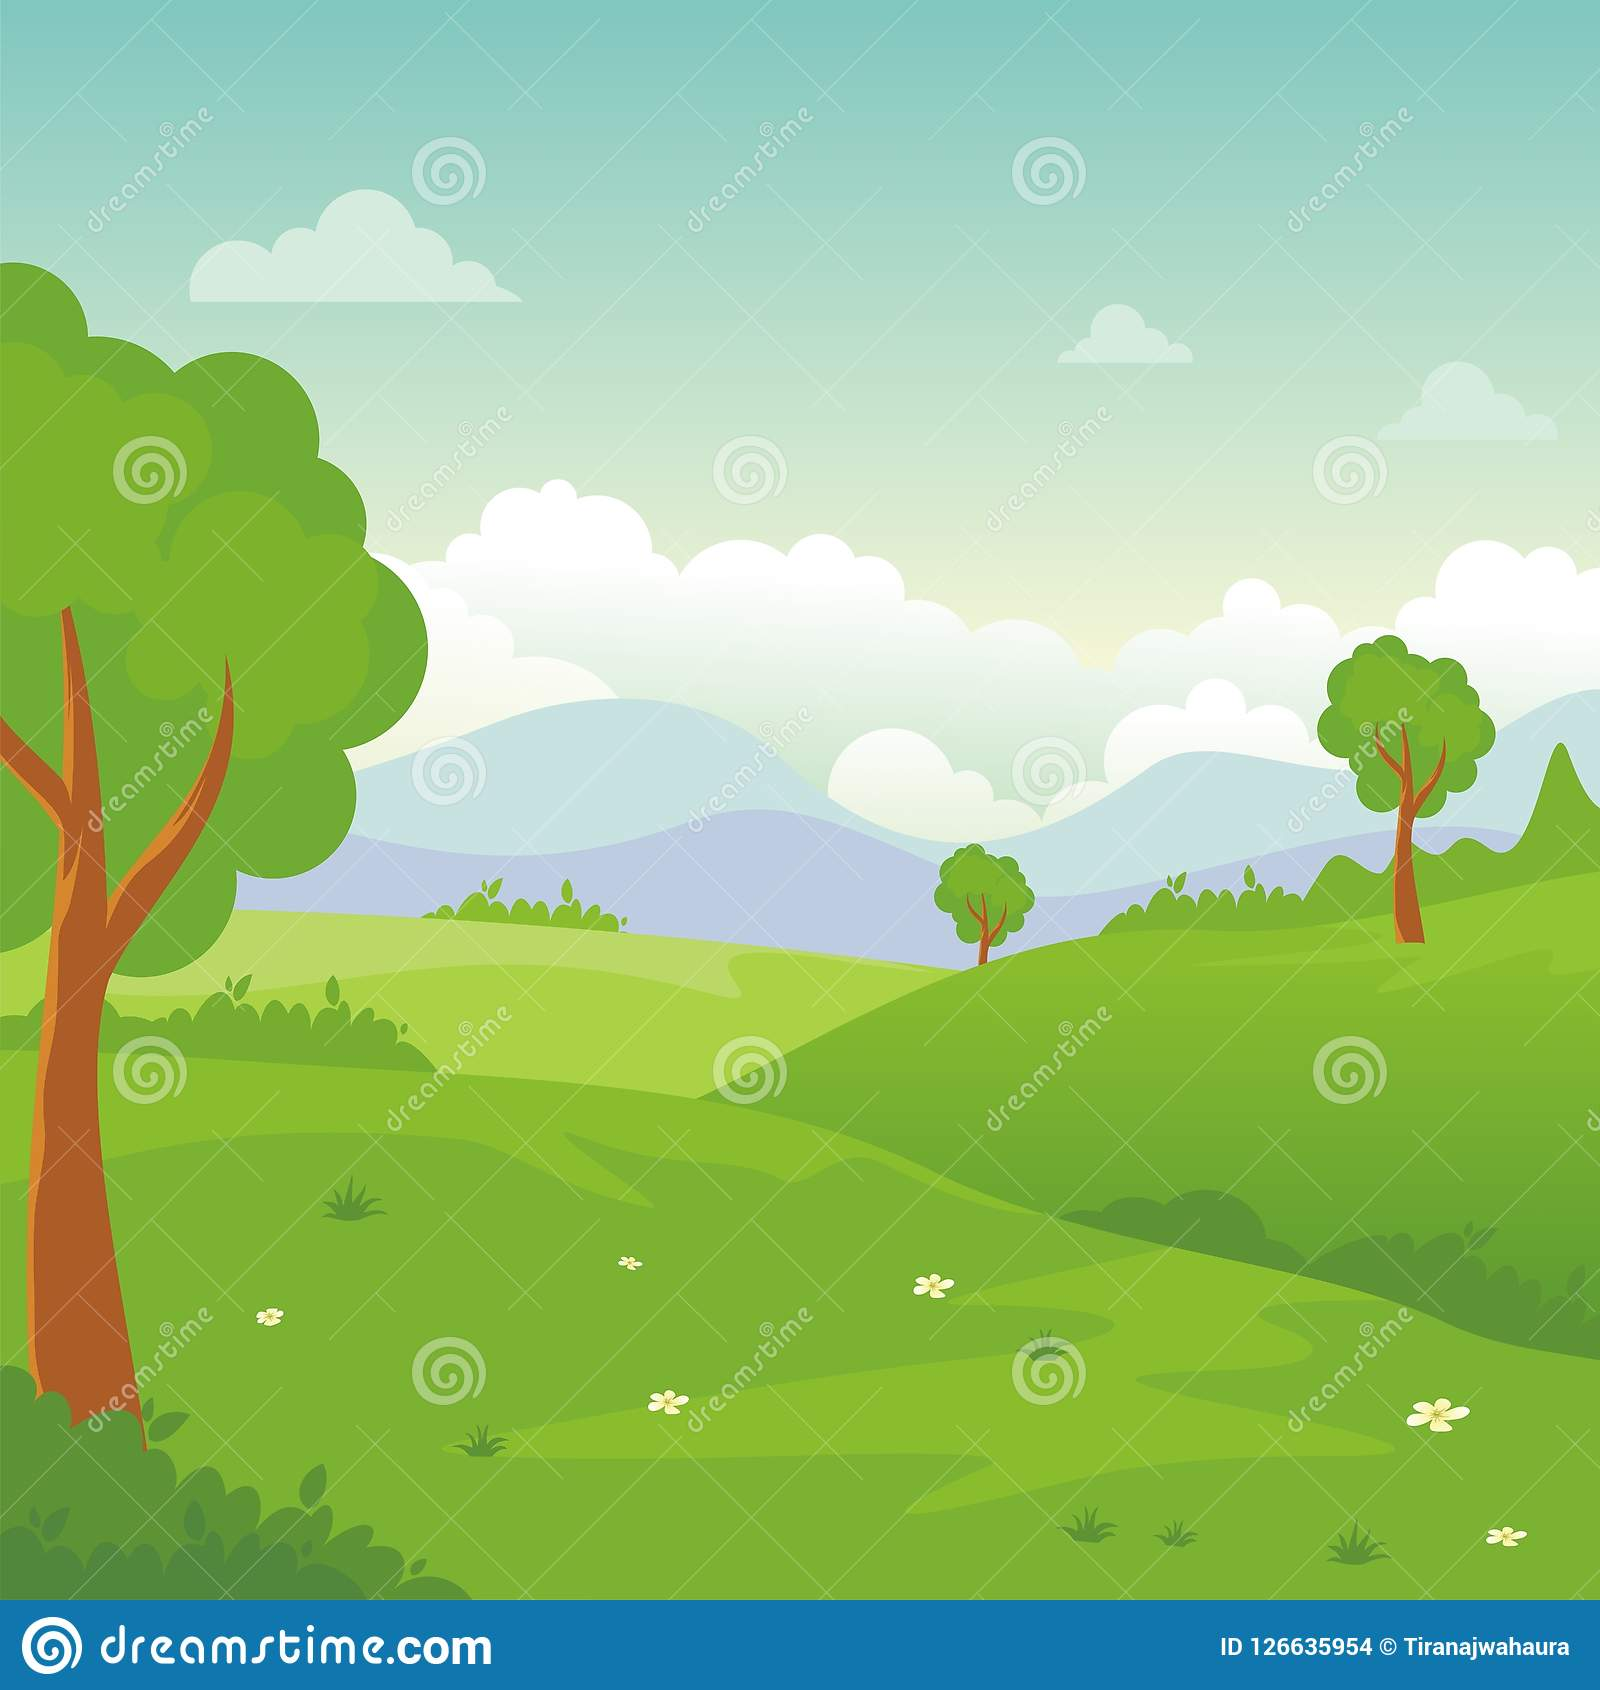 cartoon landscape, with Lovely and cute scenery design